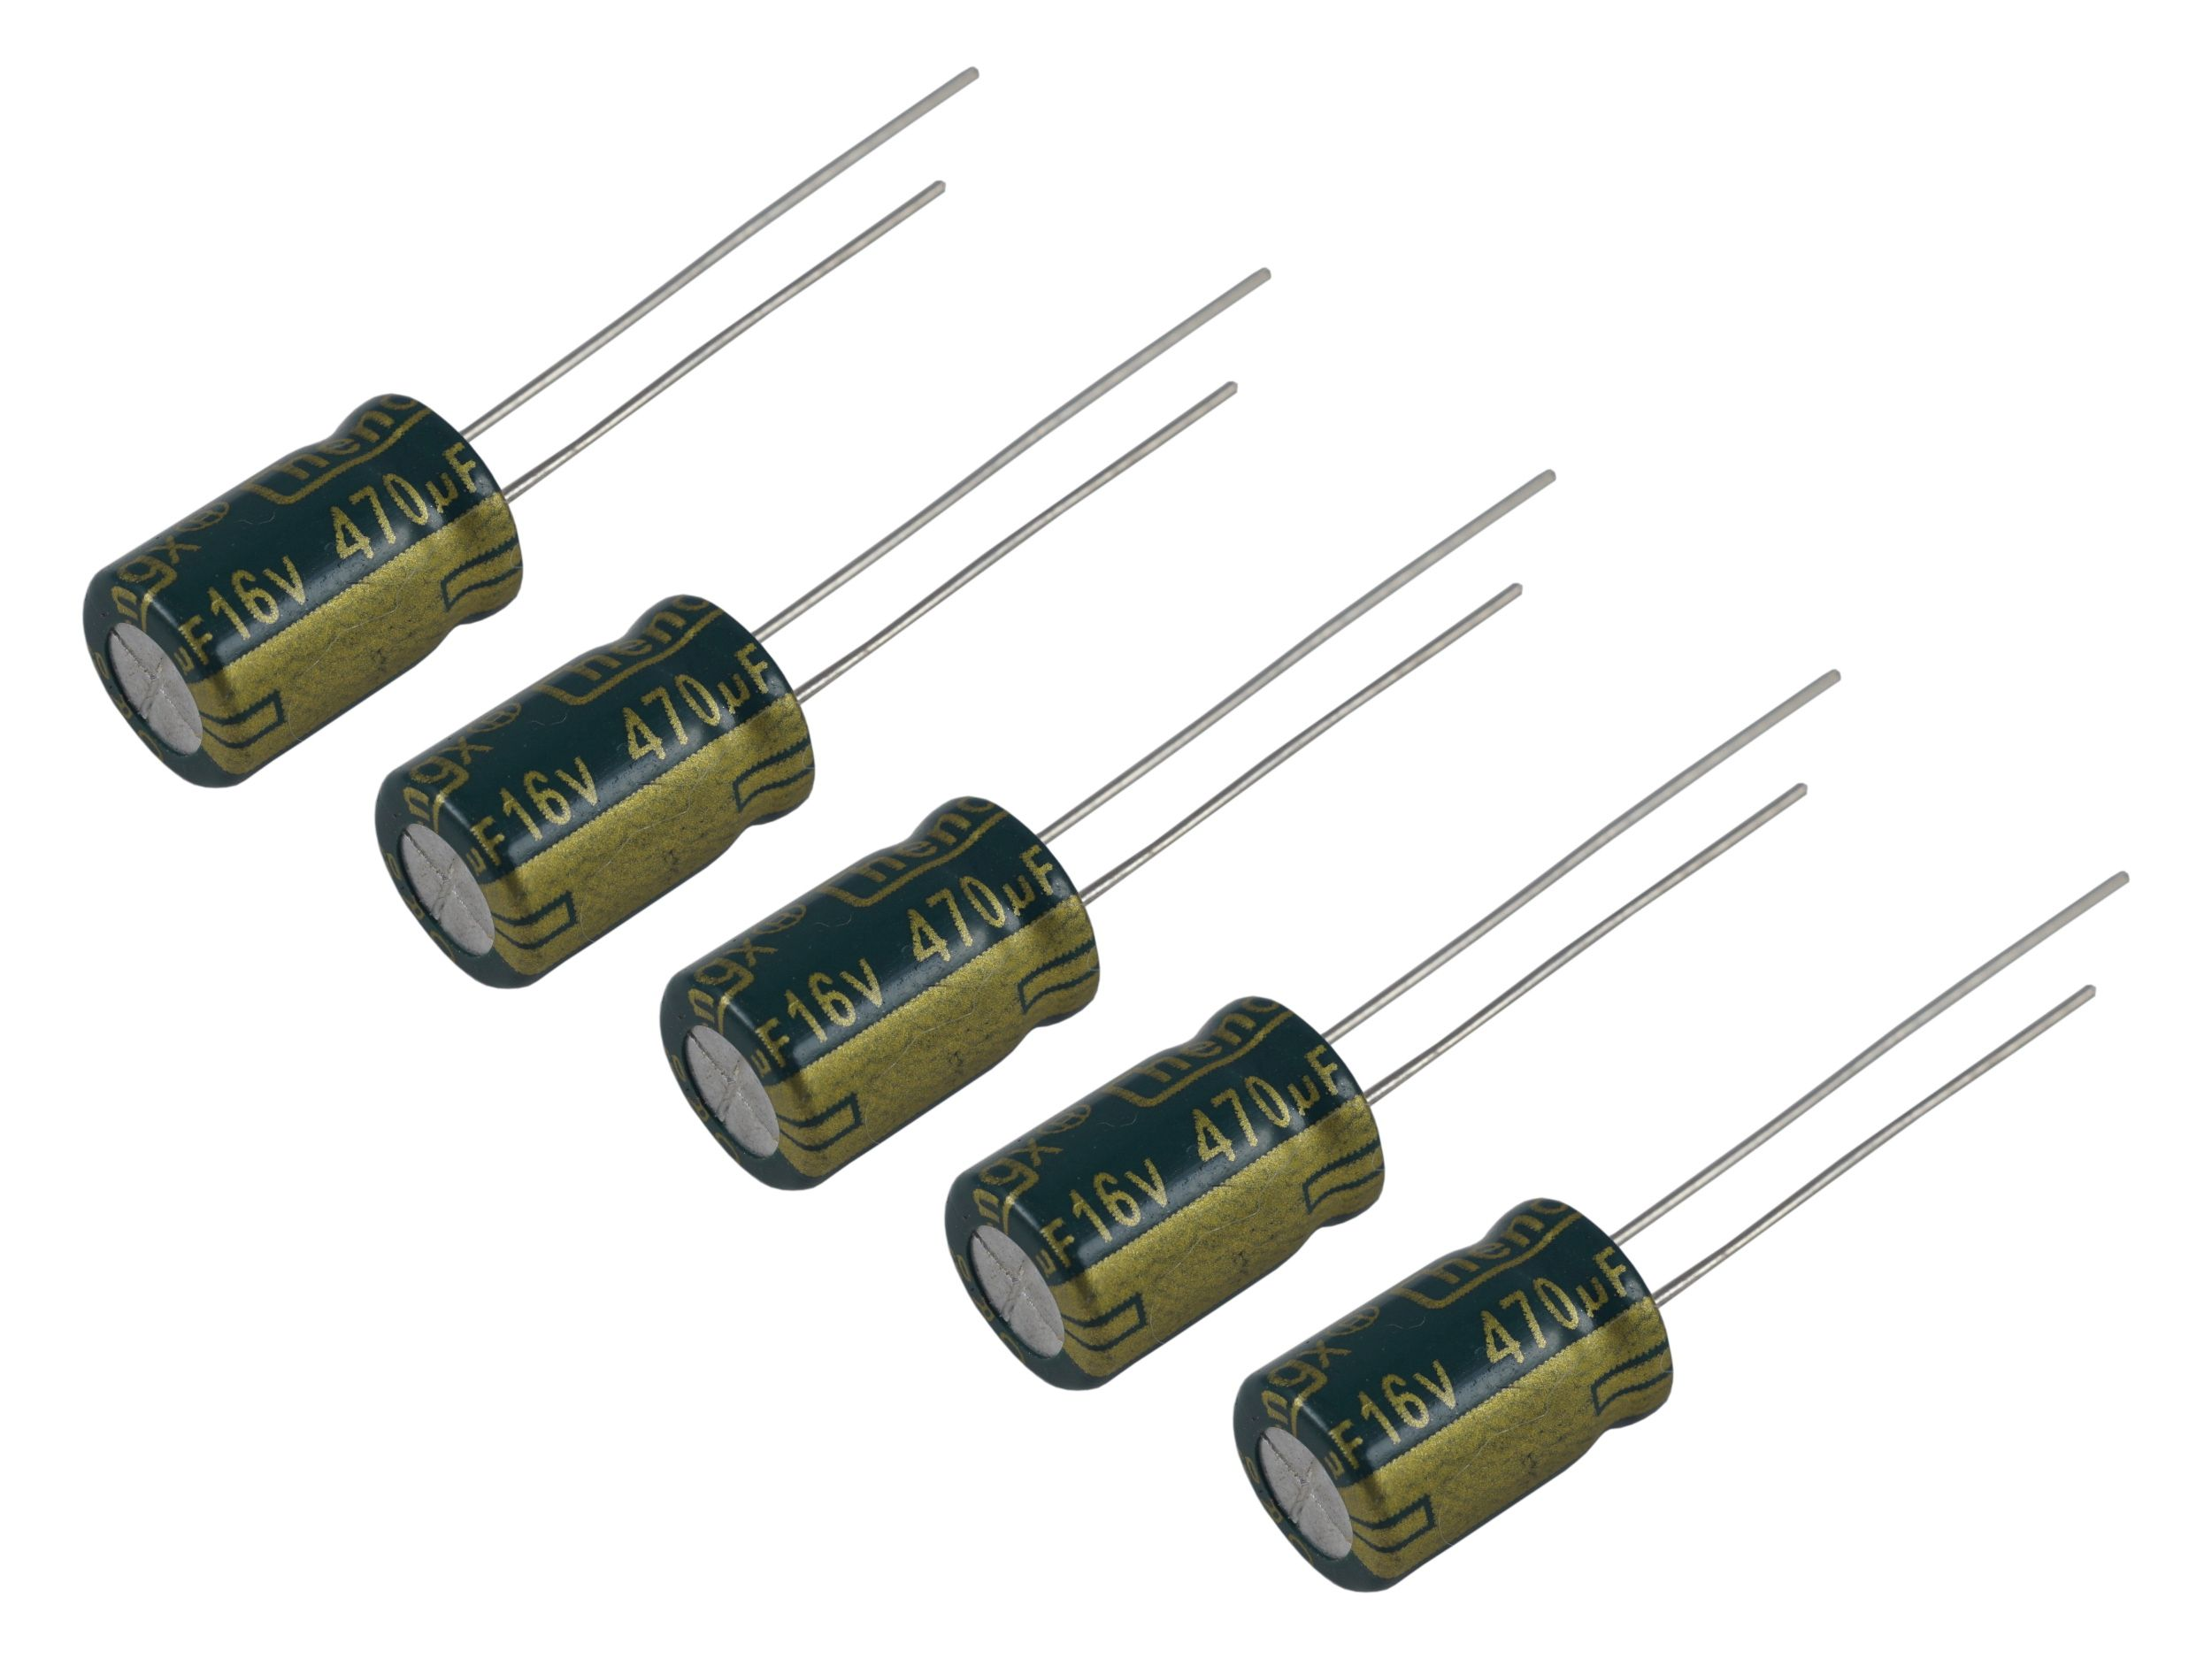 Конденсатор 470uF 16V Low ESR - [5шт]